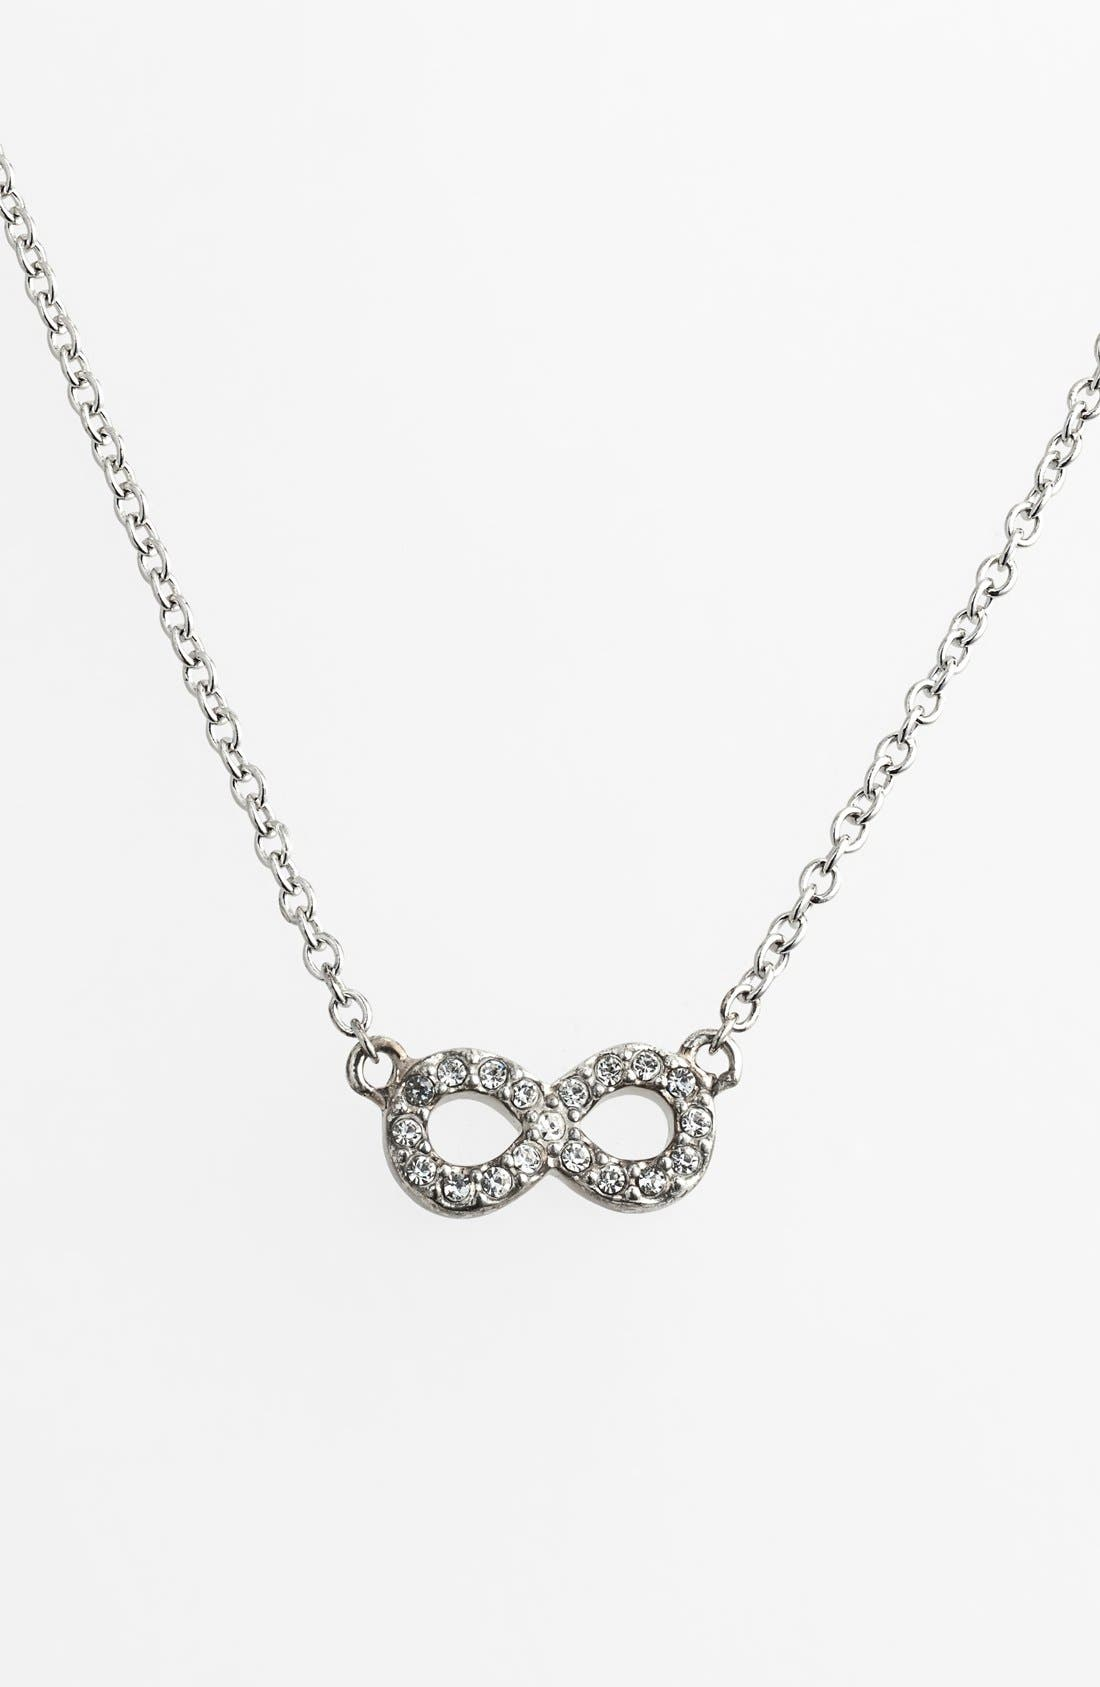 Main Image - Judith Jack 'Mini Motives' Reversible Infinity Symbol Pendant Necklace